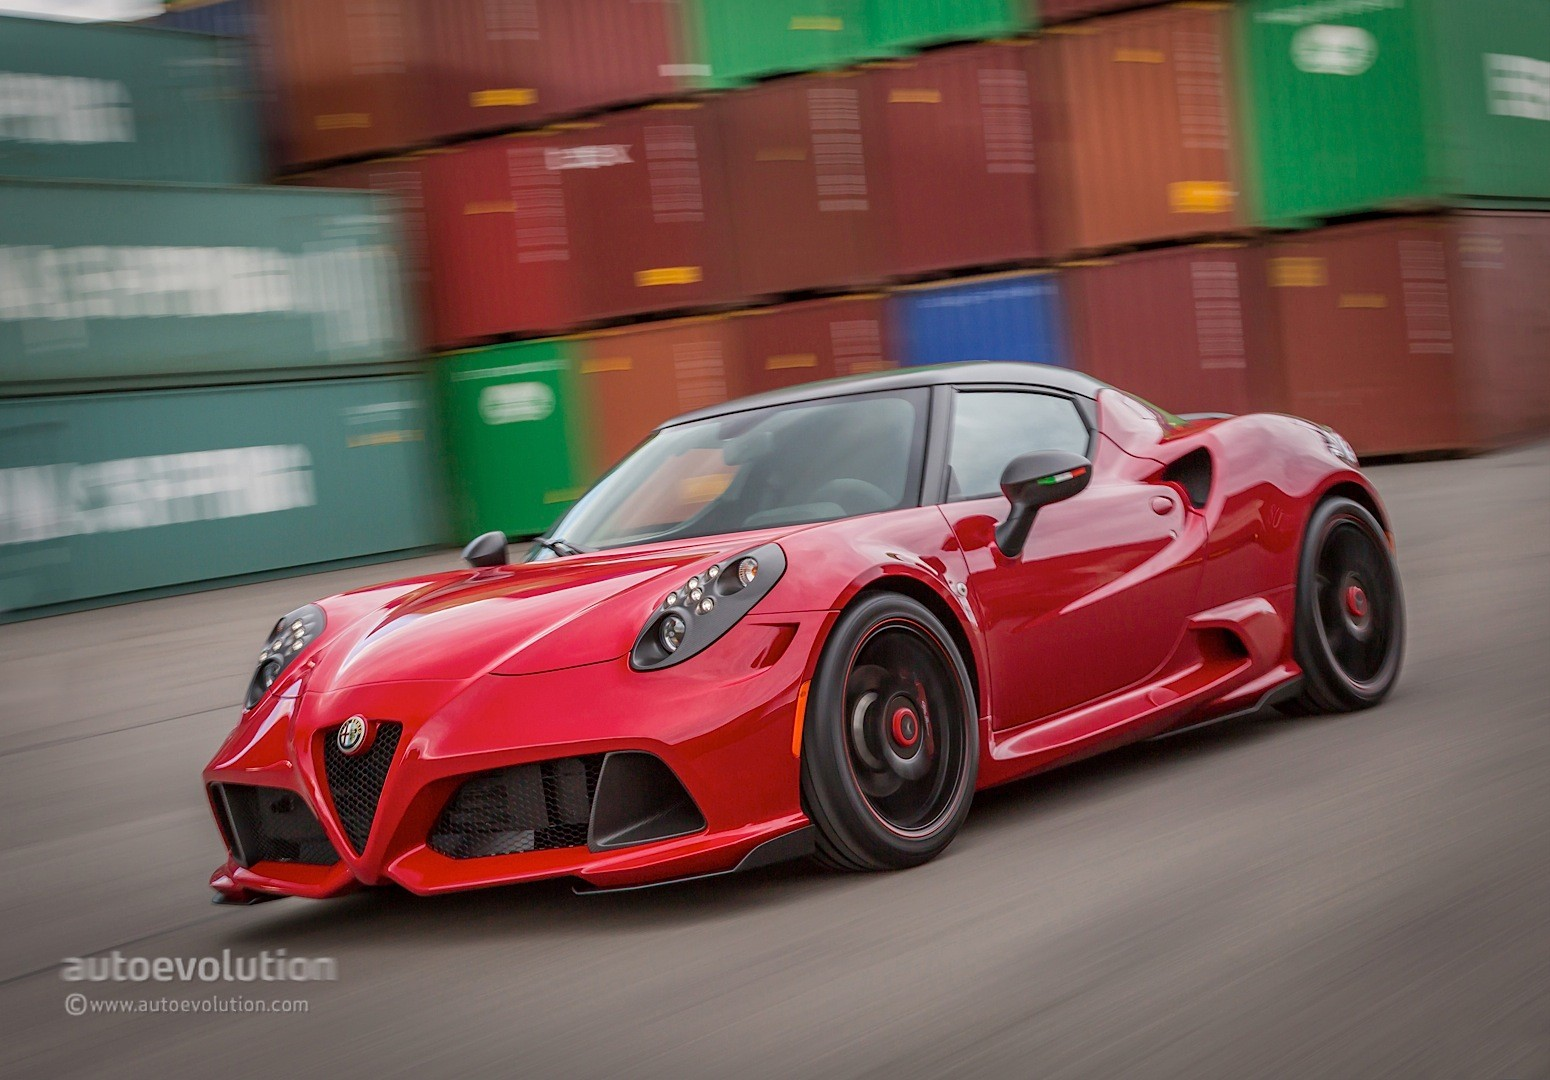 http://s1.cdn.autoevolution.com/images/news/gallery/alfa-romeo-4c-tuned-by-zender-italia-is-stunning-video-photo-gallery_6.jpg